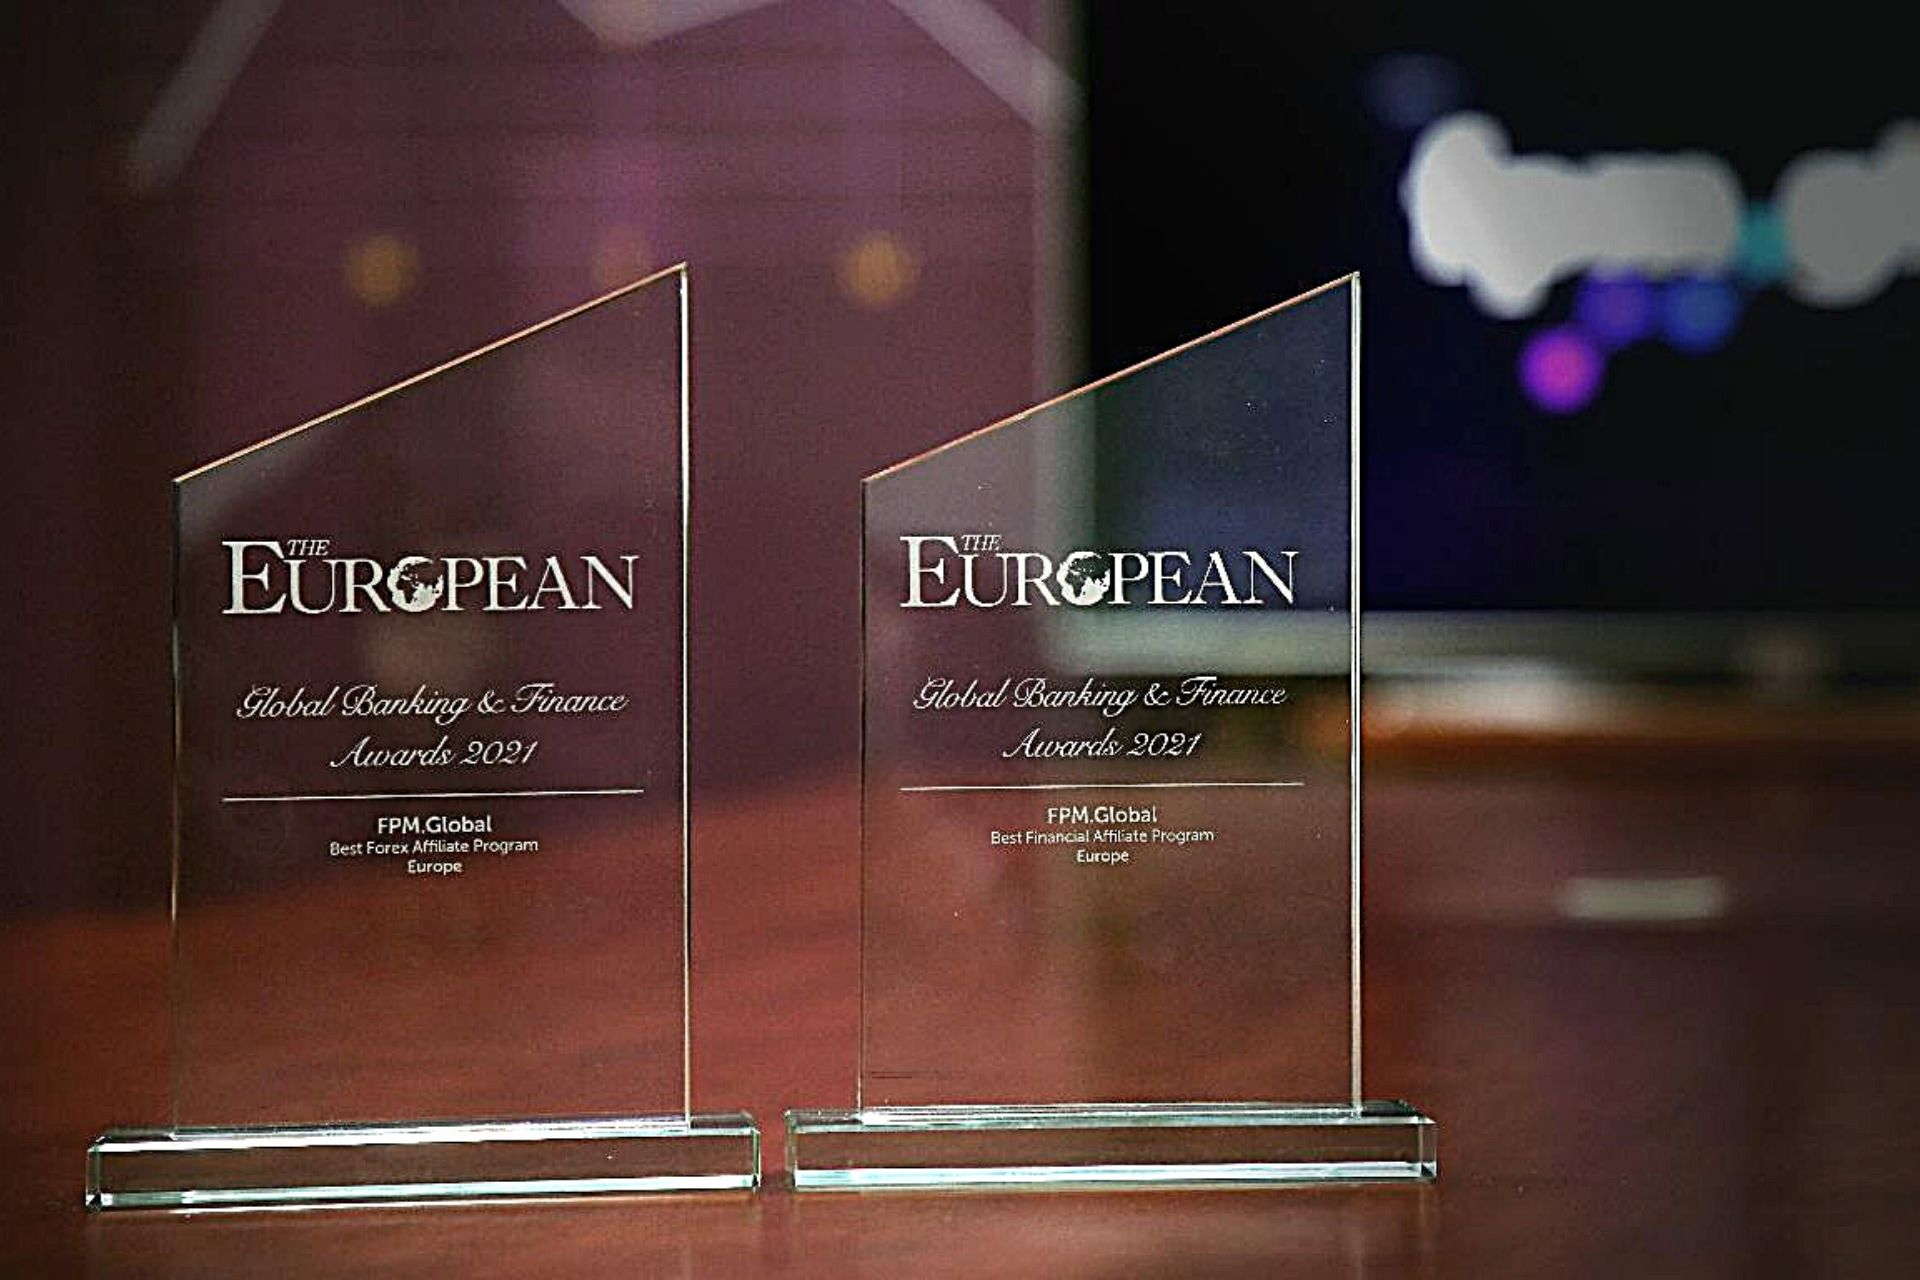 FPM.Global Recognized by The European